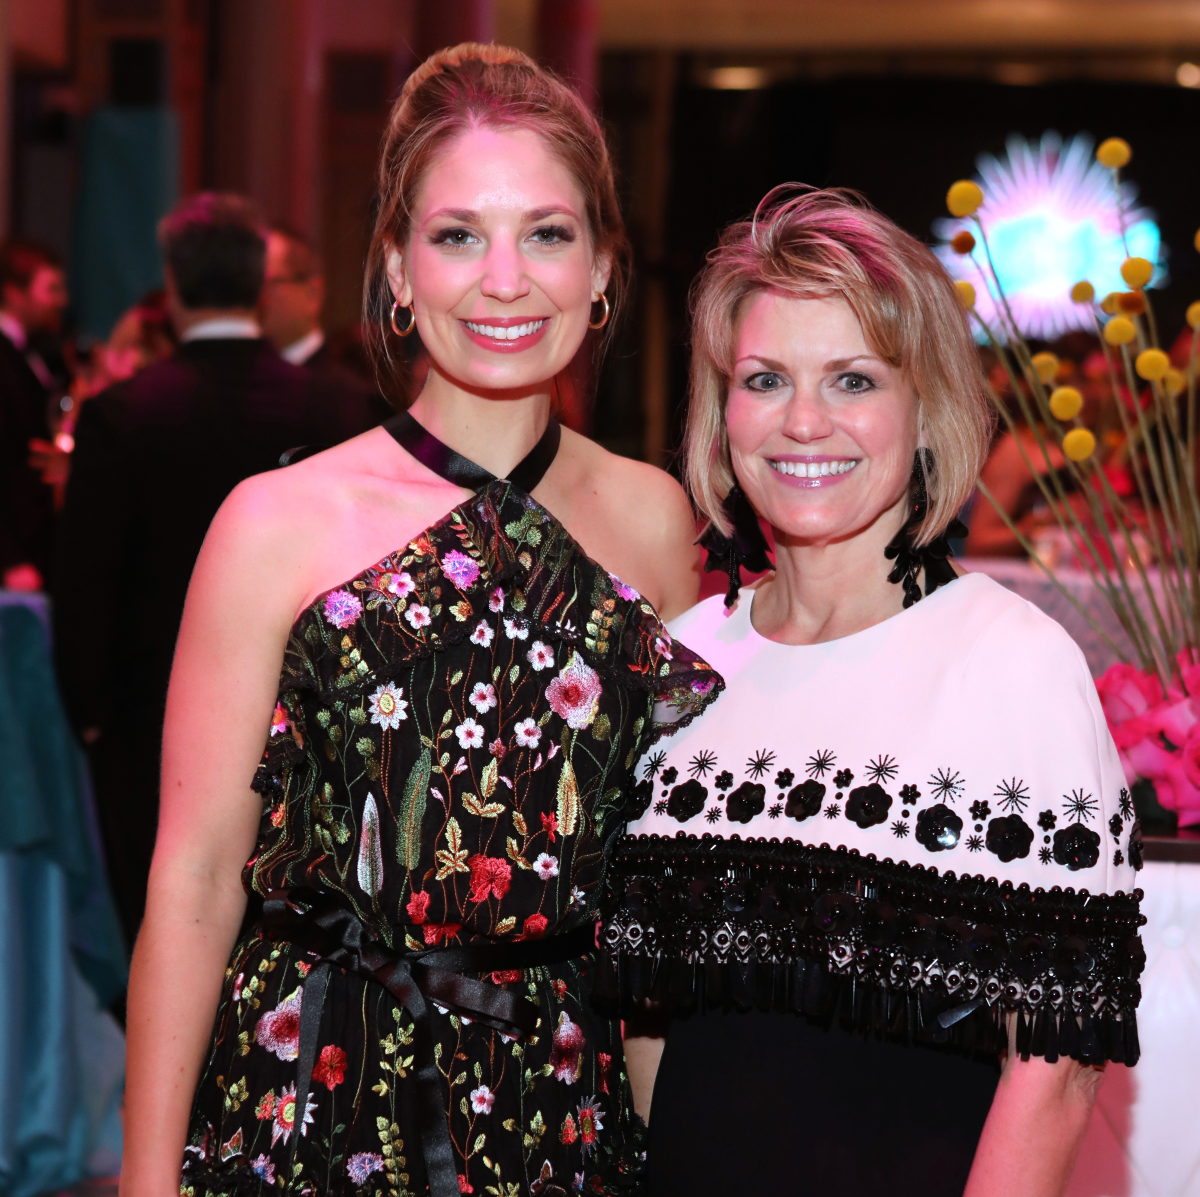 Houston, HMNS Big Bang Ball, March 2017, Elise Lubanko, Kelley Lubanko